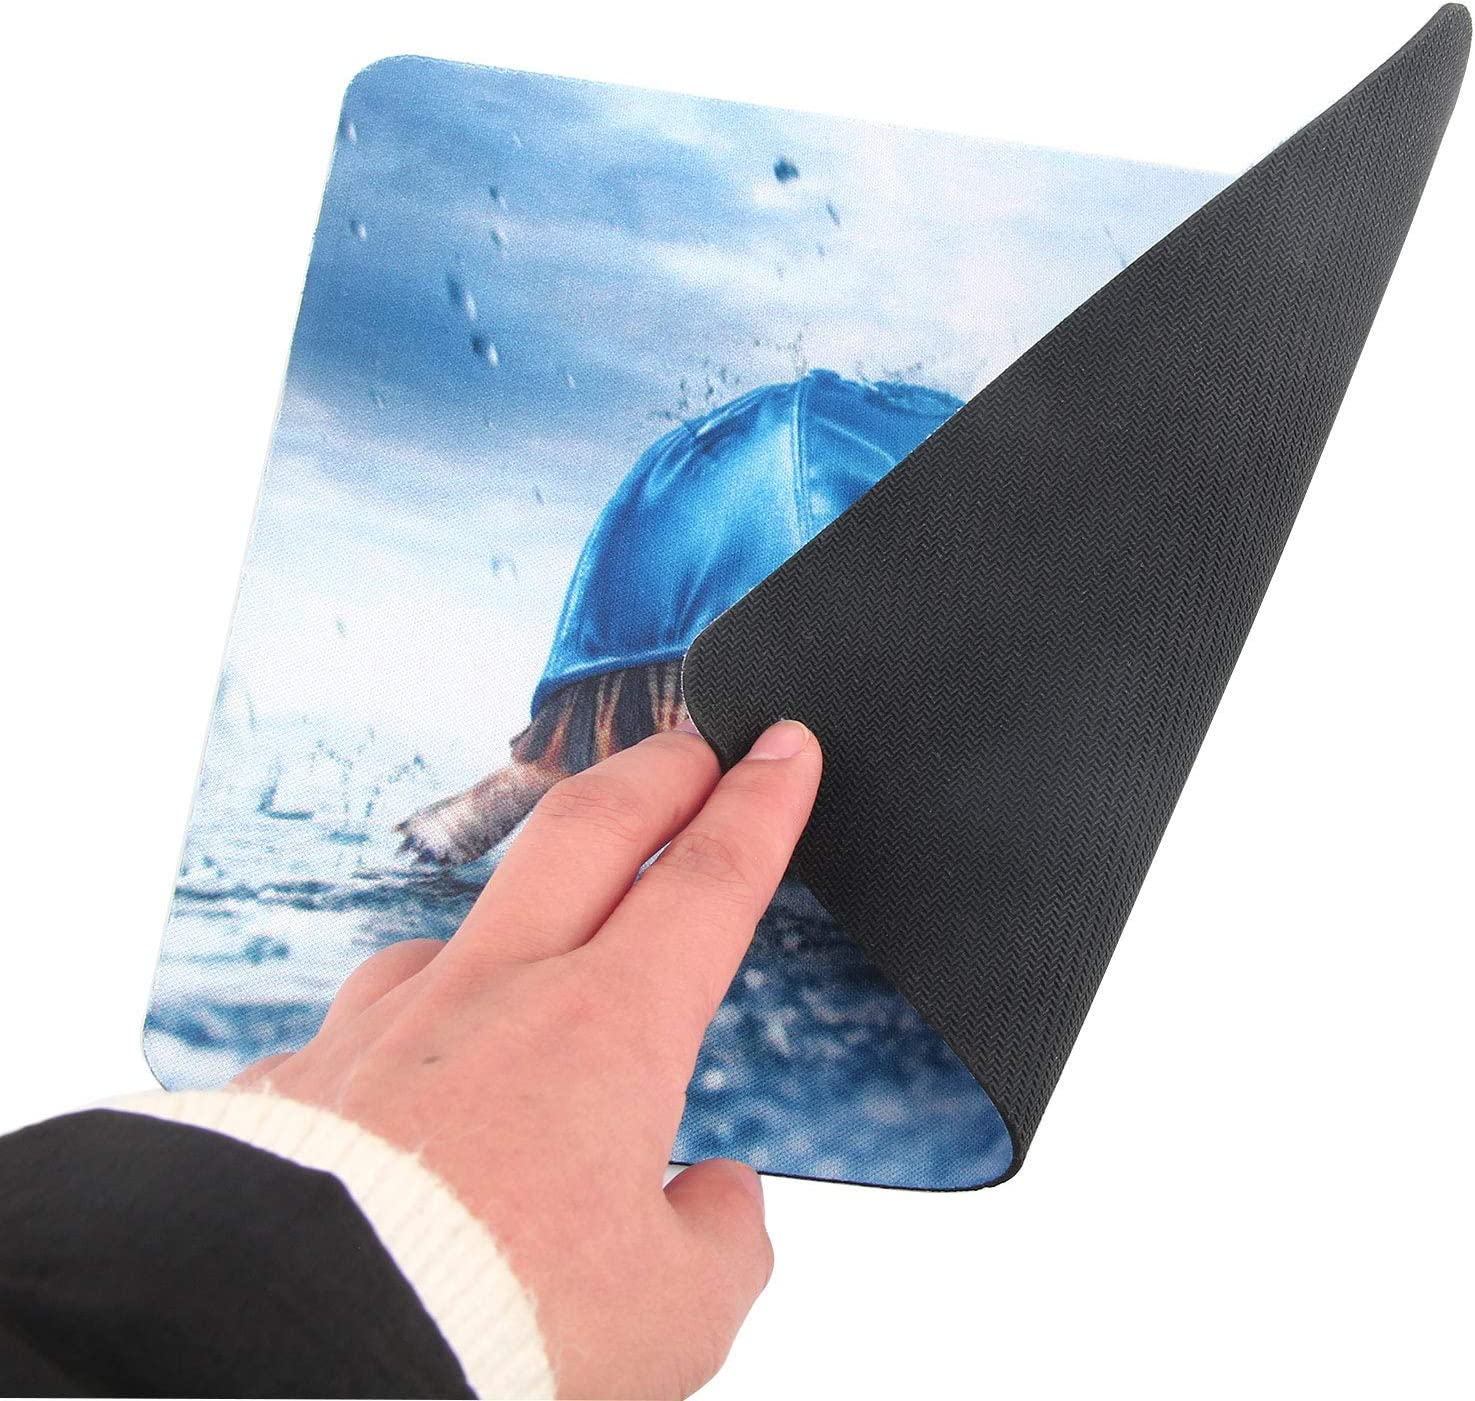 Non-Slip Rubber Base Mousepad for Laptop Computer PC Personality Desings Gaming Mouse Pad Mat 9.45 X 7.87 inch Blue Galaxy, 9.45 X 7.87 inch